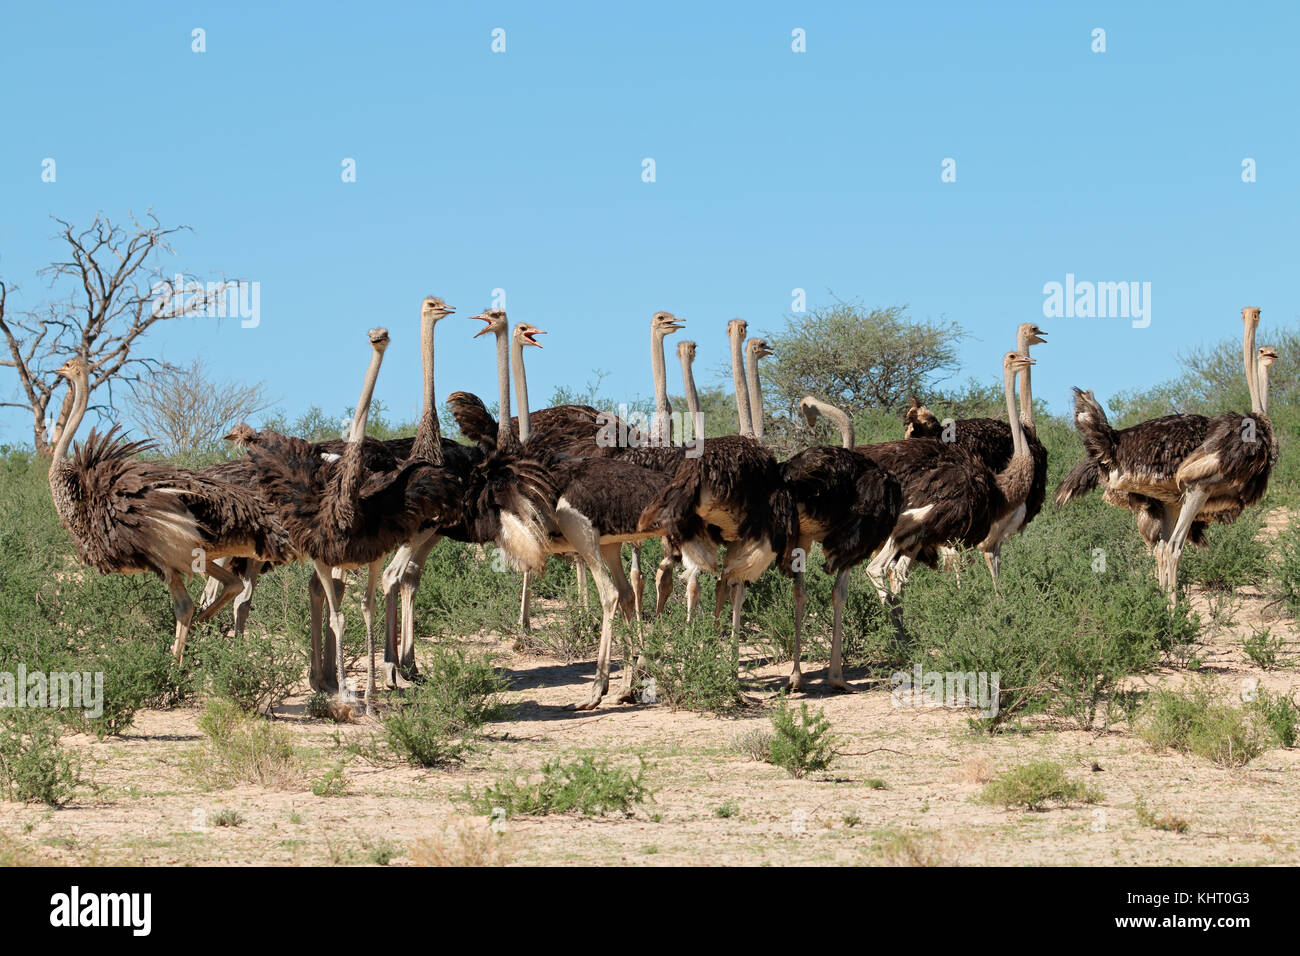 Group of ostriches (Struthio camelus) in natural habitat, Kalahari desert, South Africa - Stock Image